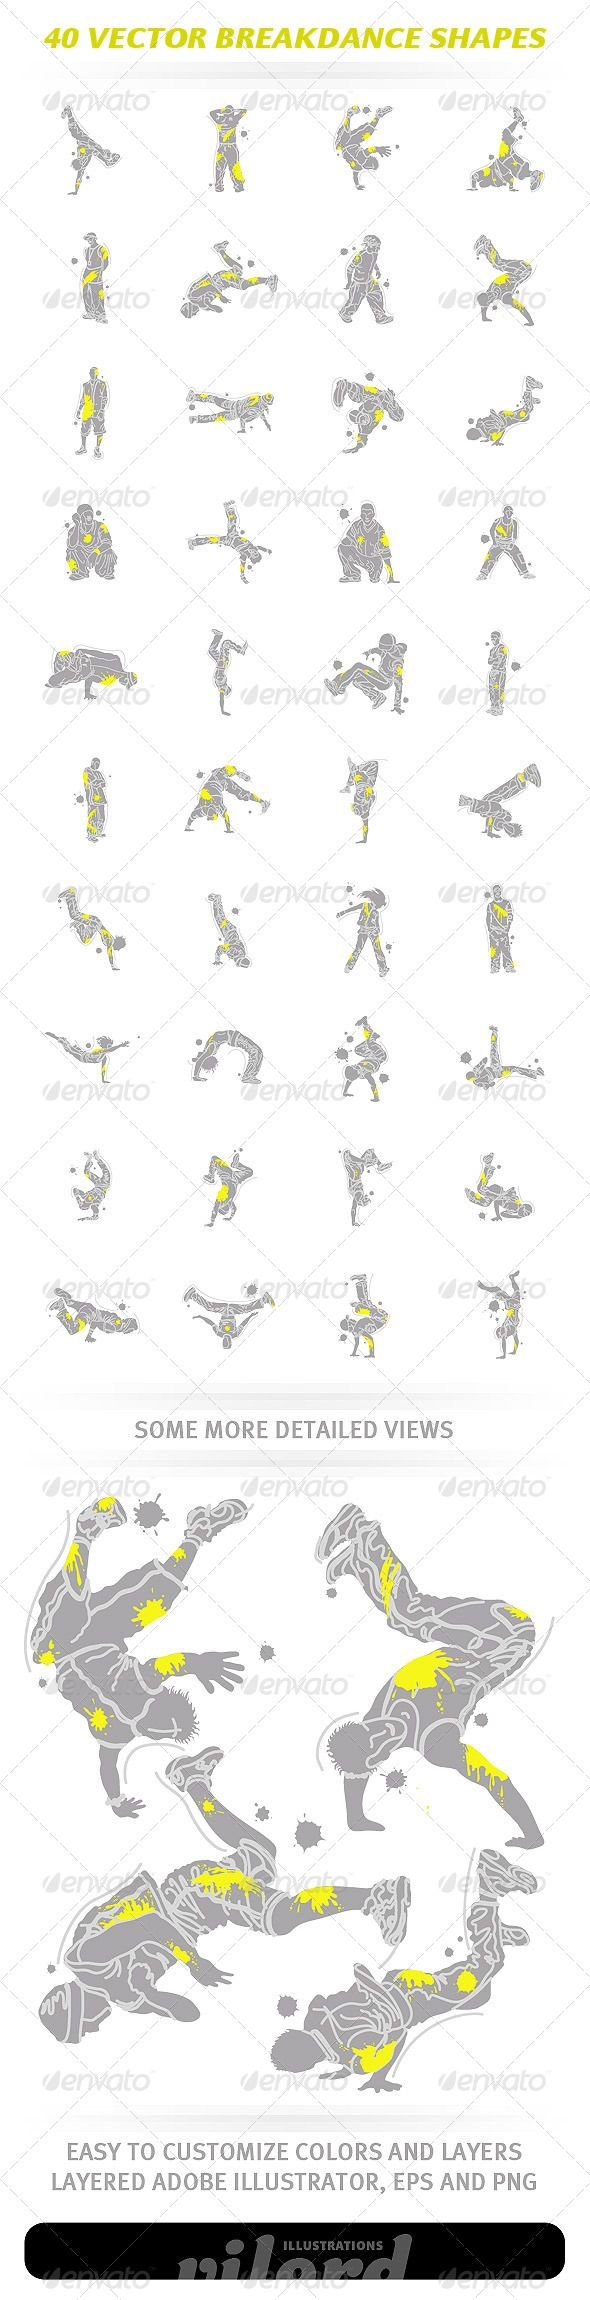 40 Vector Breakdance Shapes